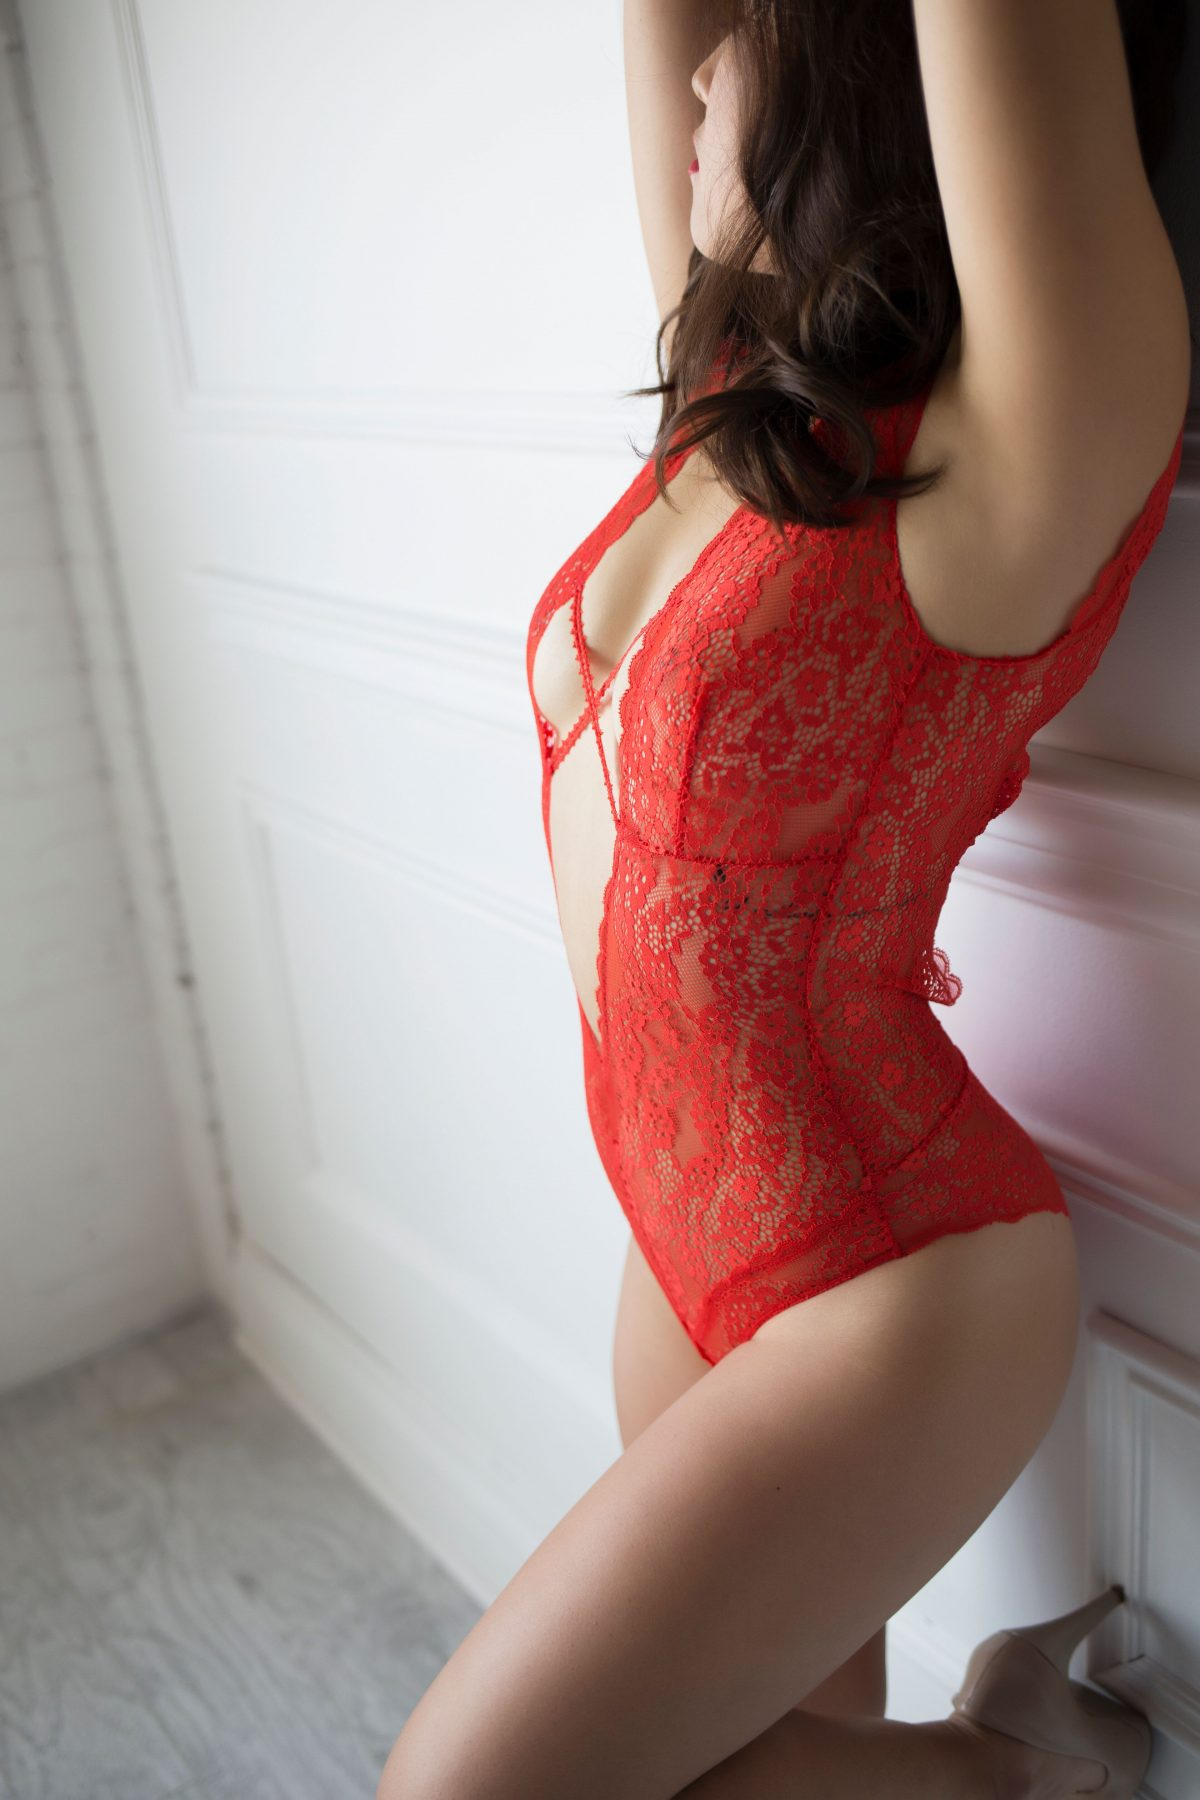 Toronto escorts companion upscale Aubrey Interests Duo Non-smoking Age Young Figure Slender Petite Breasts Natural Hair Brunette Ethnicity Asian Tattoos Small Arrival Returning